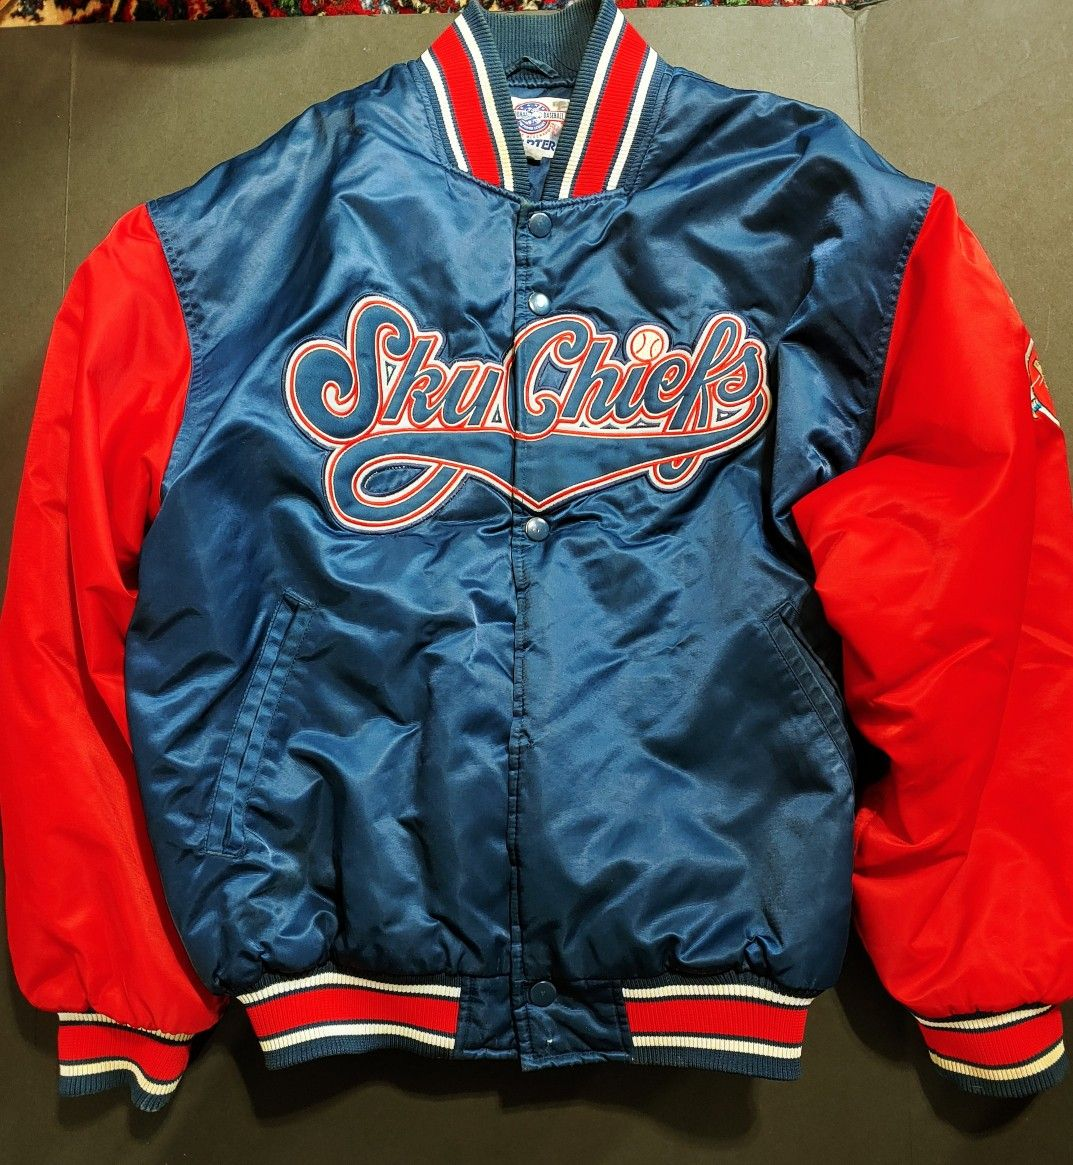 Vintage Syracuse Chiefs Sky Chiefs Game Used Baseball Dugout Jacket Xxl In 2021 Baseball Dugout Chiefs Game Jackets [ 1165 x 1073 Pixel ]